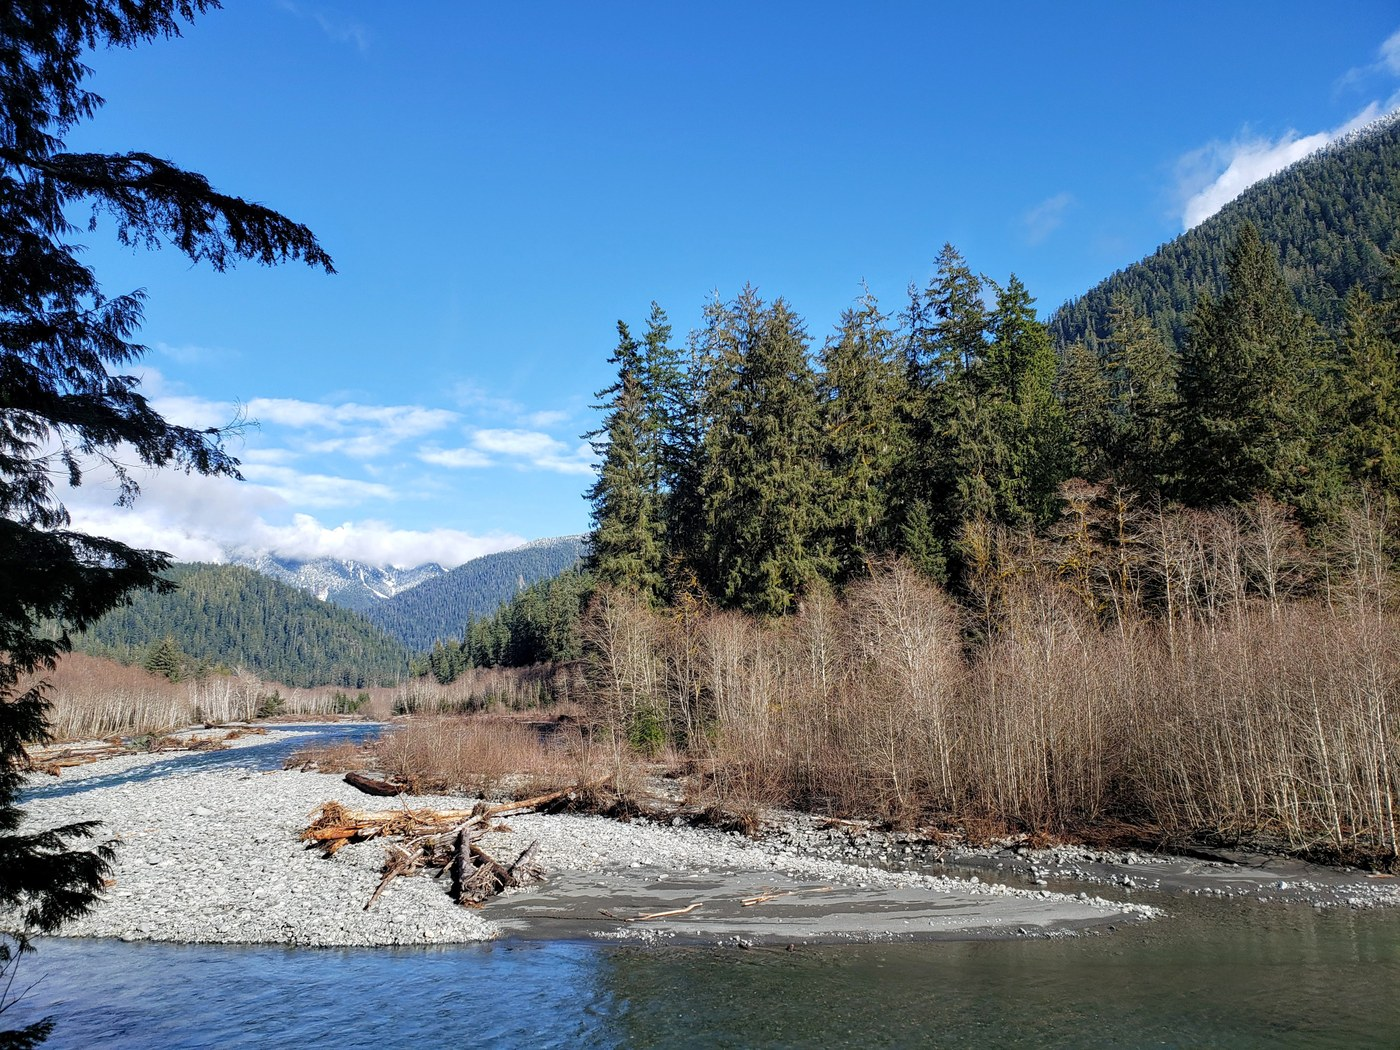 A wide river runs through a rocky bed, with evergreen forest on either side.